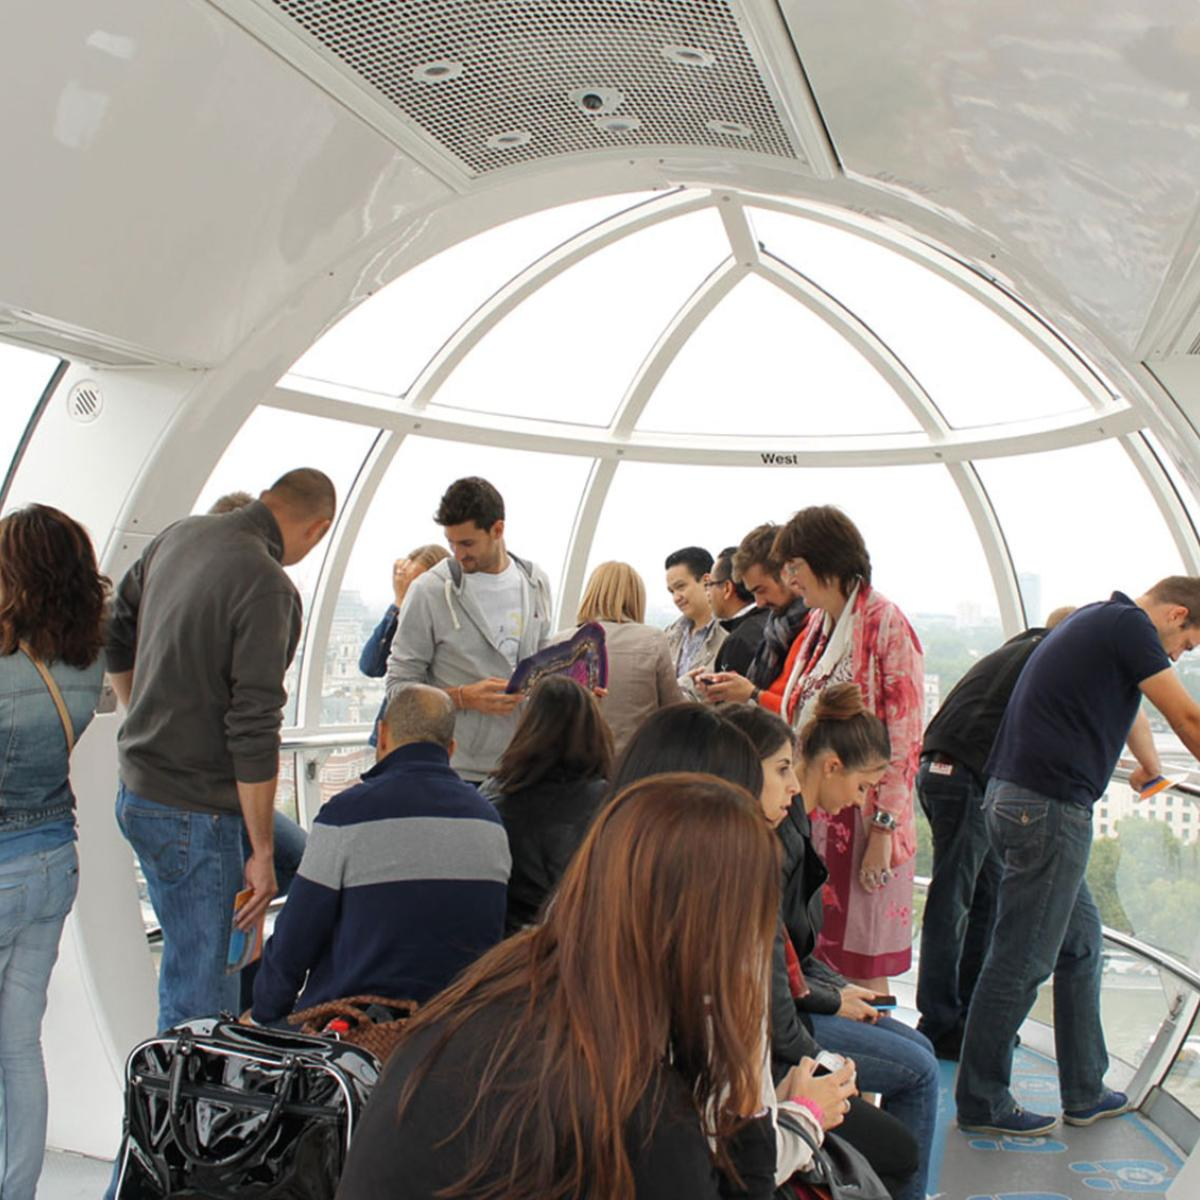 Group at London Eye